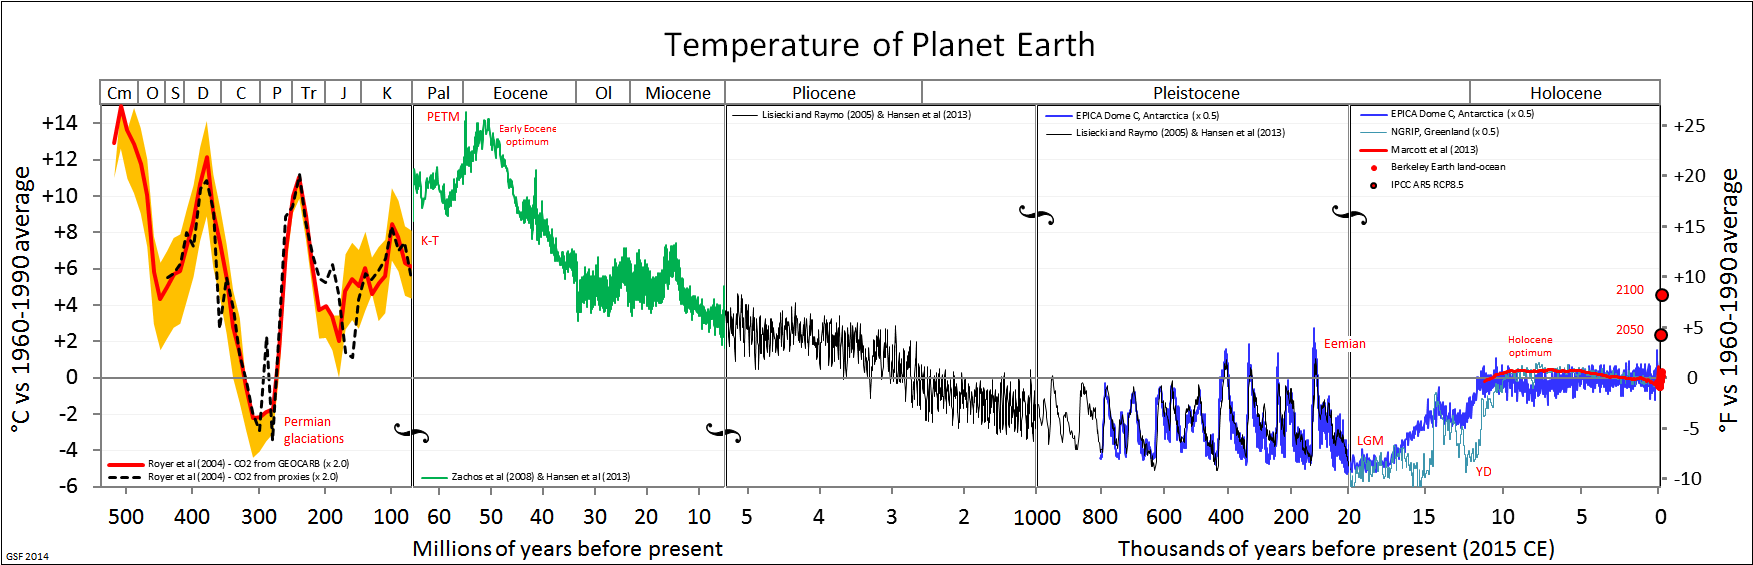 planets temperature bar graph - photo #41